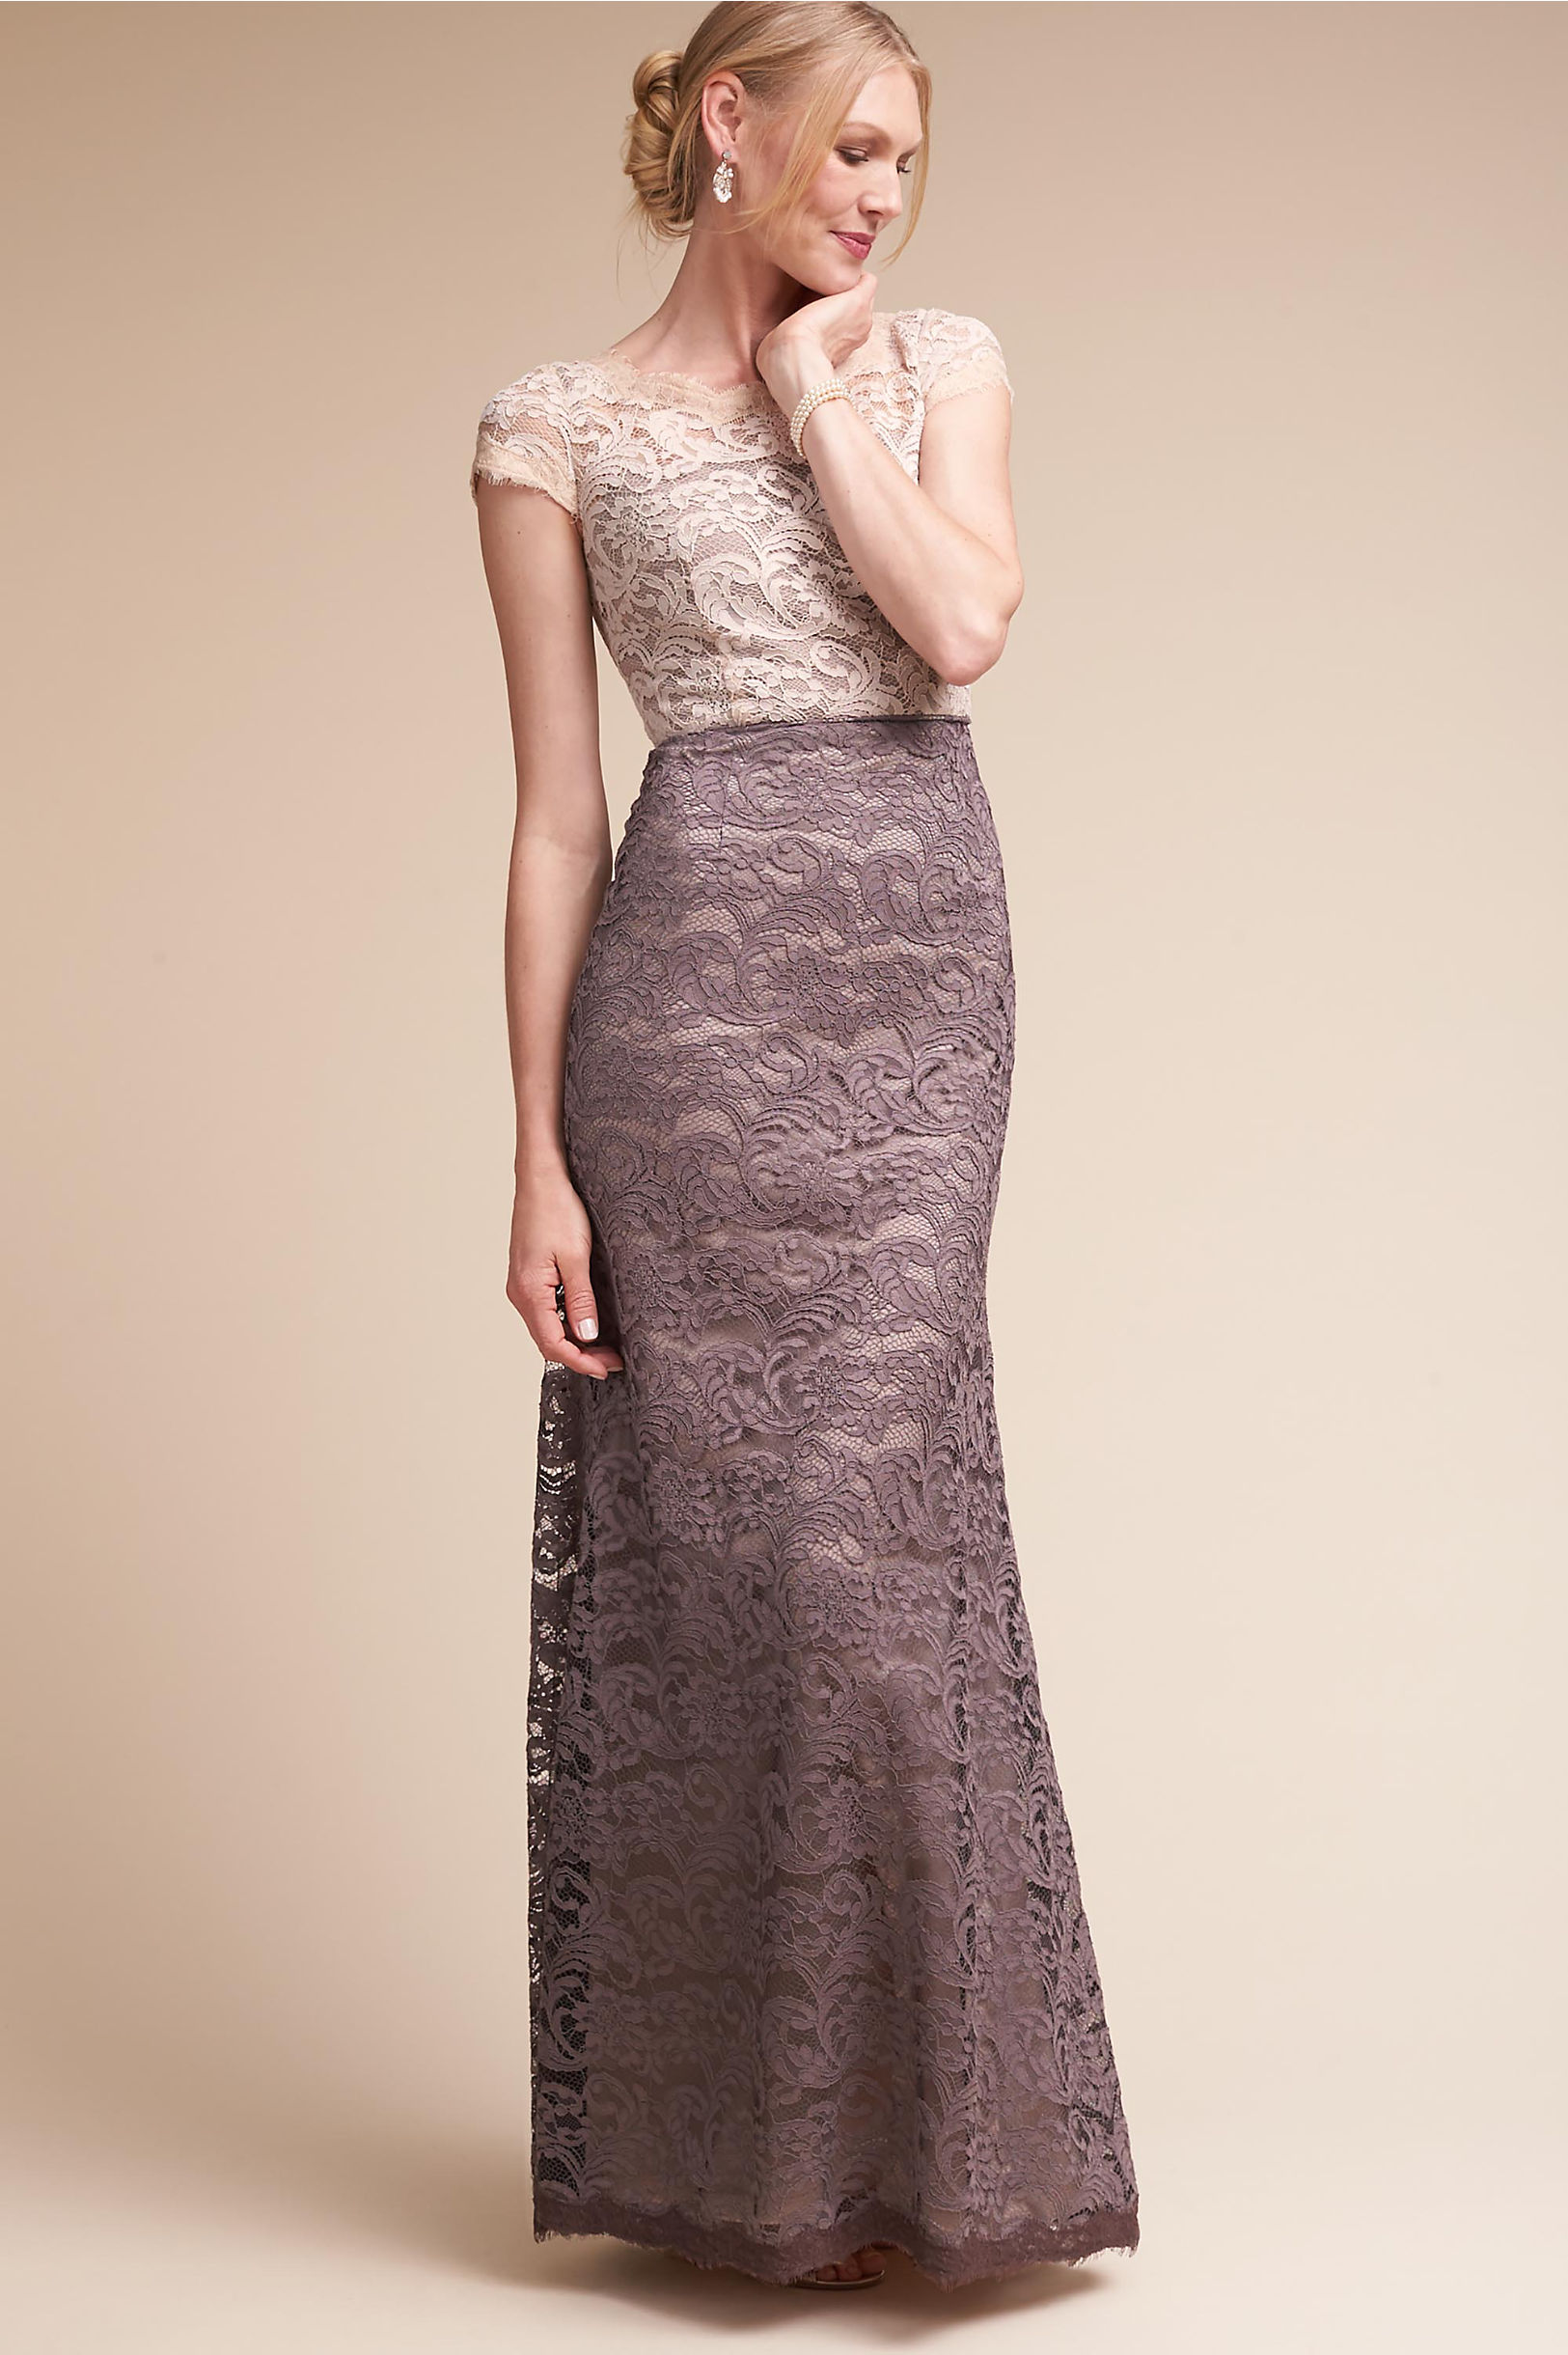 BHLDN Products on Sale | Discounted BHLDN Items | BHLDN